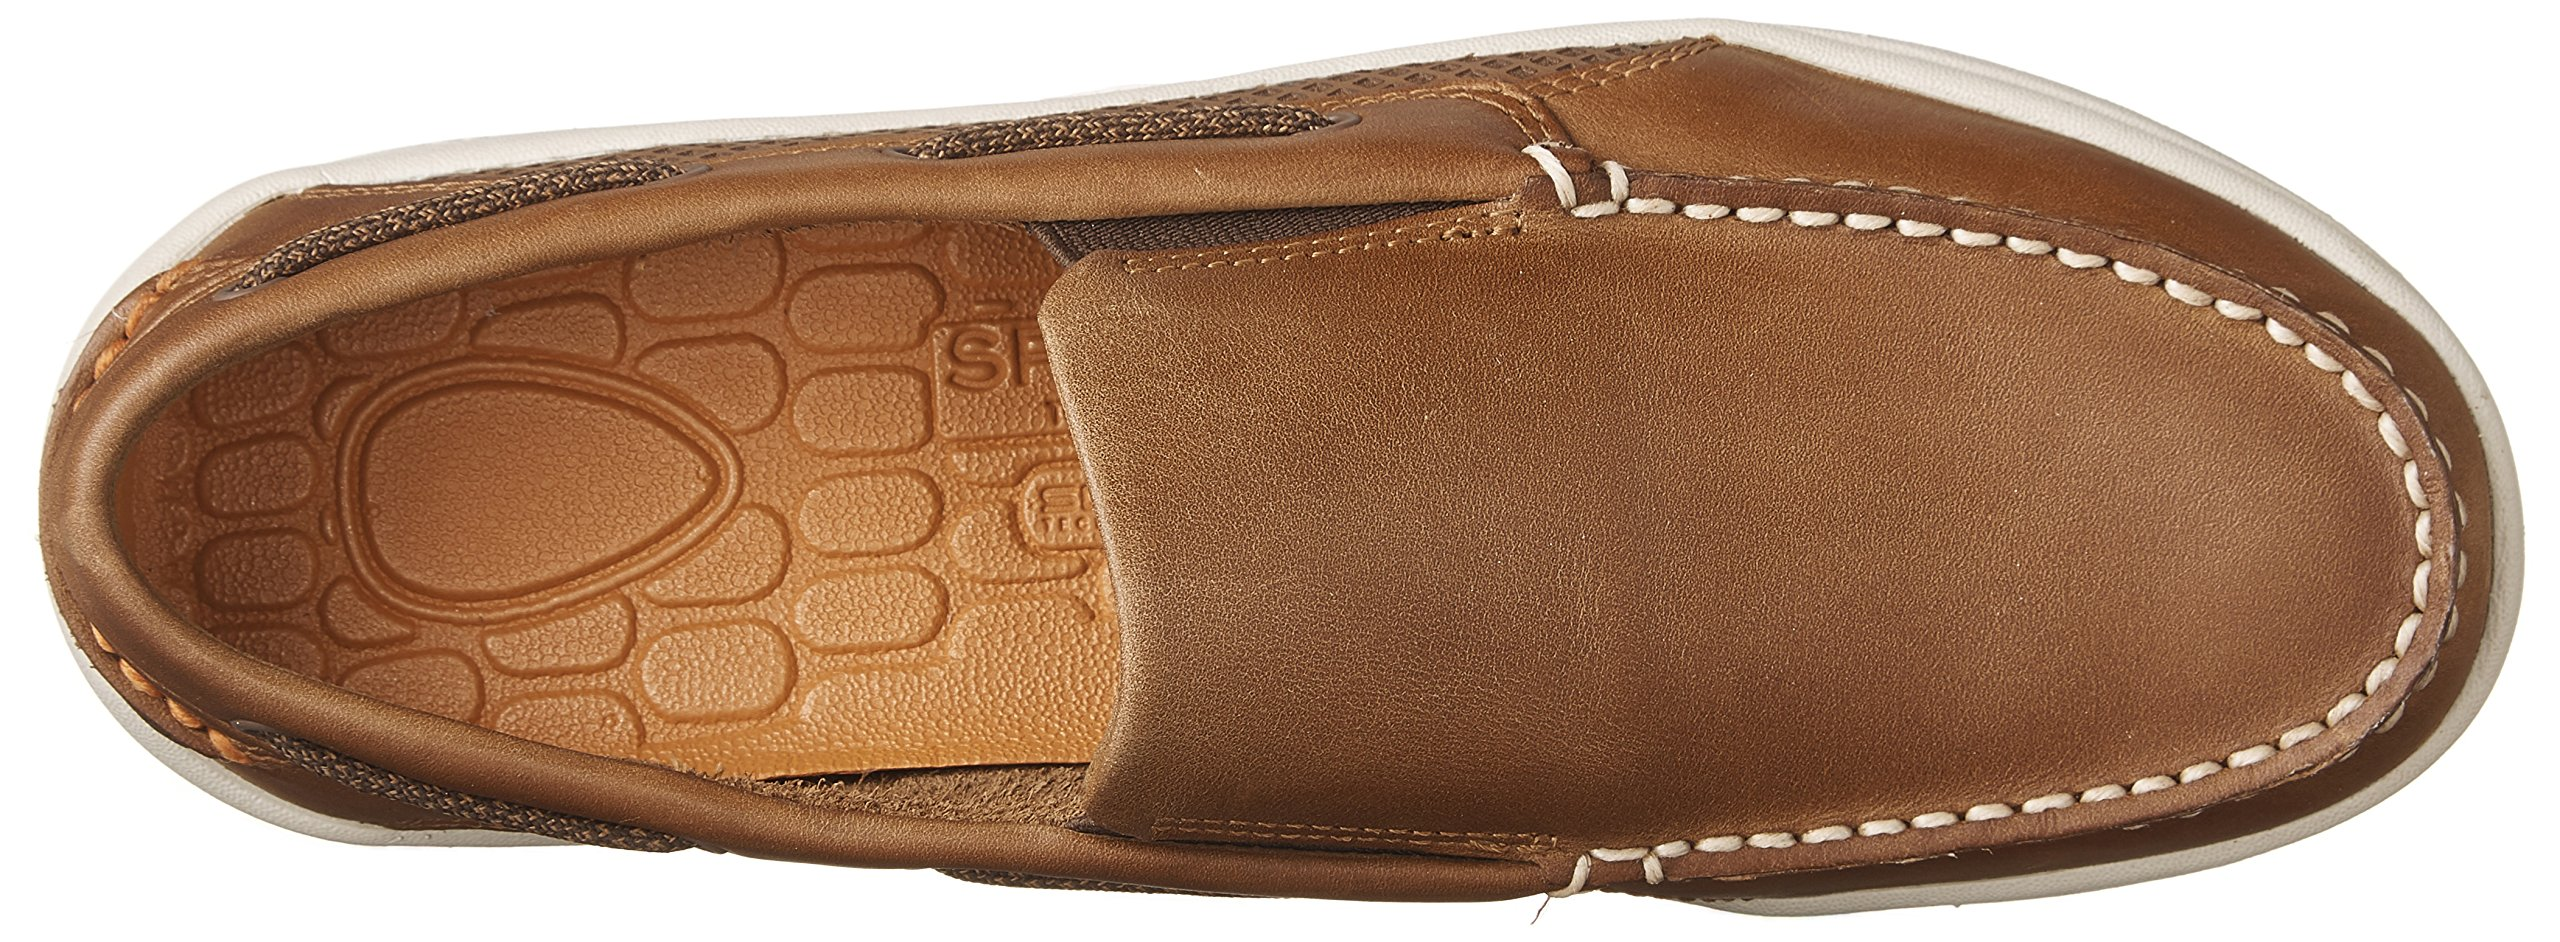 Sperry Top-Sider Men's Gamefish Slip On Boat Shoe, Dark Tan, 10.5 M US by Sperry Top-Sider (Image #8)